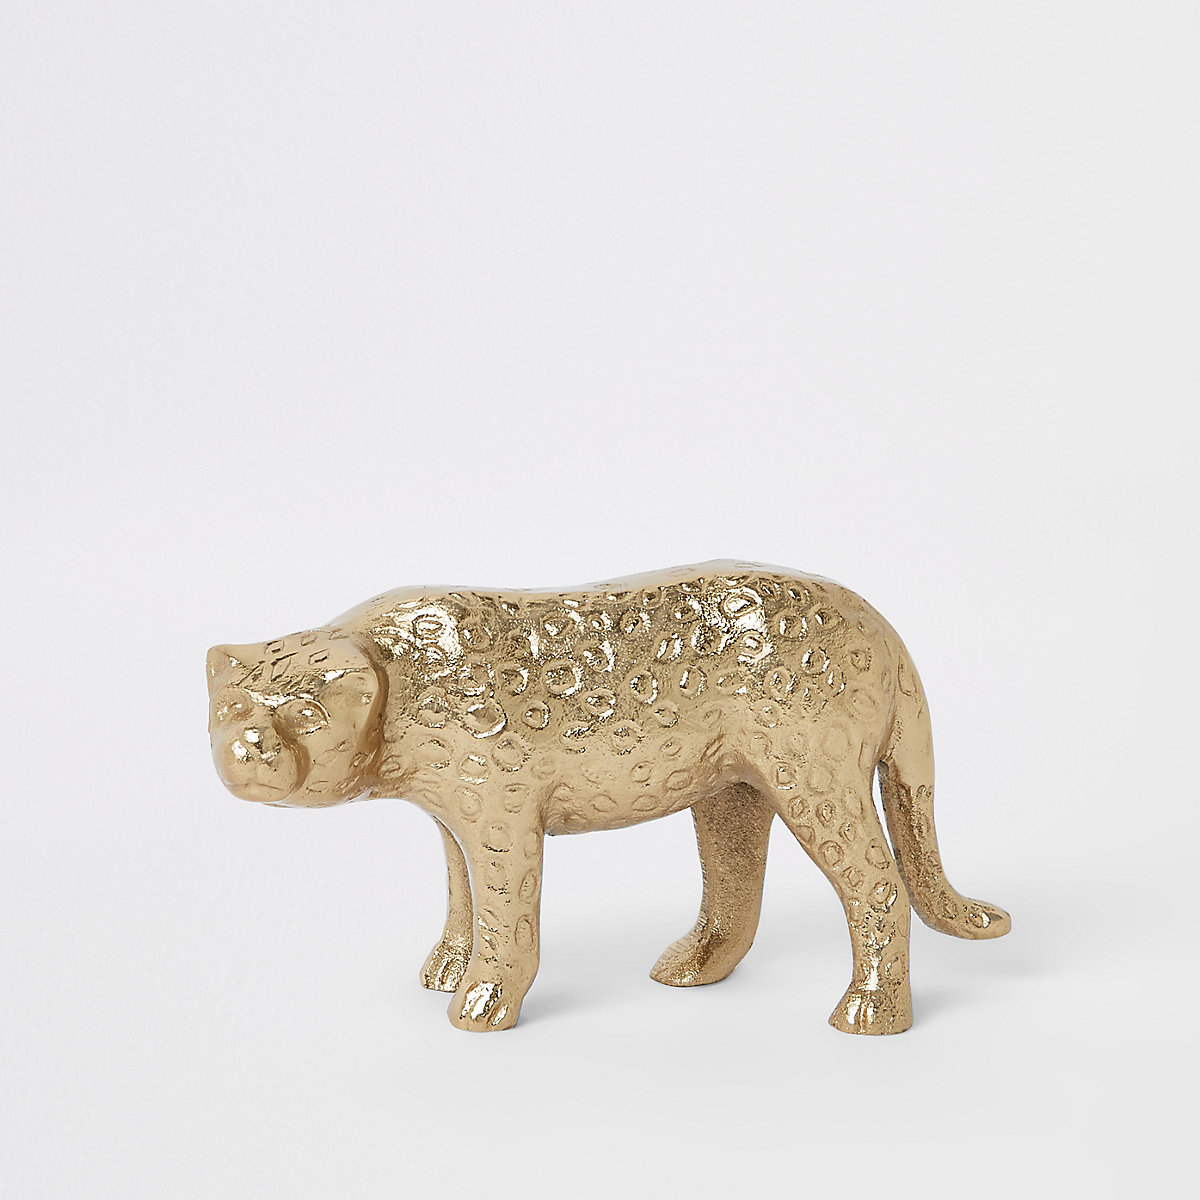 Gold panther ornament